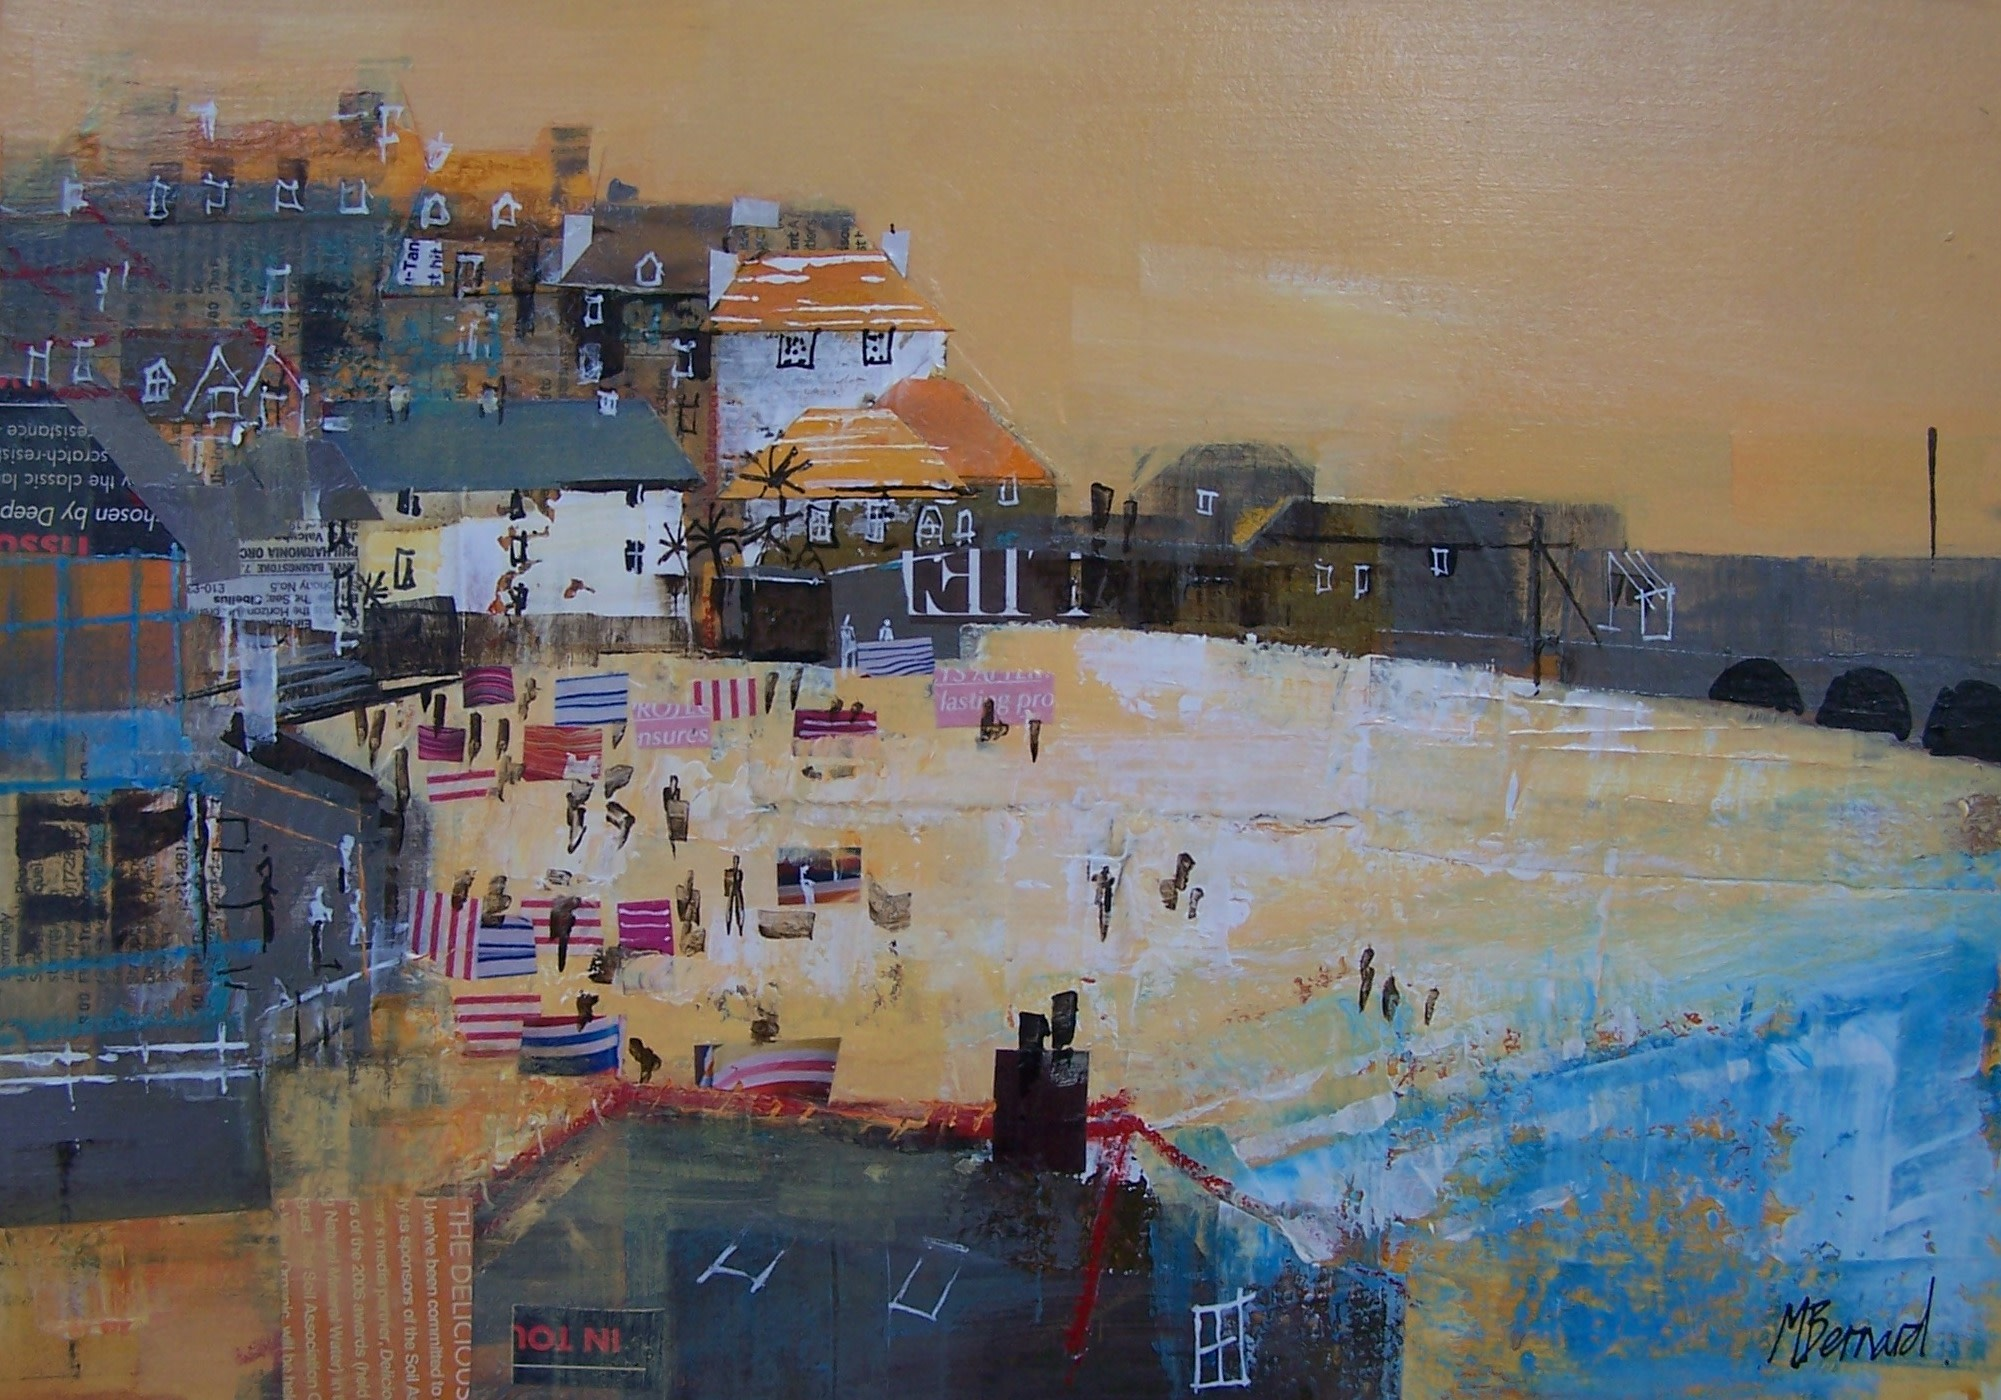 "<span class=""link fancybox-details-link""><a href=""/artists/155-mike-bernard-ri/works/5790-mike-bernard-ri-st-ives-cornwall-2018/"">View Detail Page</a></span><div class=""artist""><strong>Mike Bernard RI</strong></div> <div class=""title""><em>St Ives Cornwall</em>, 2018</div> <div class=""signed_and_dated"">signed by the artist</div> <div class=""medium"">Mixed media on canvas</div> <div class=""dimensions"">22.9 x 31.8 cm<br /> 9 x 12 1/2 inches</div>"